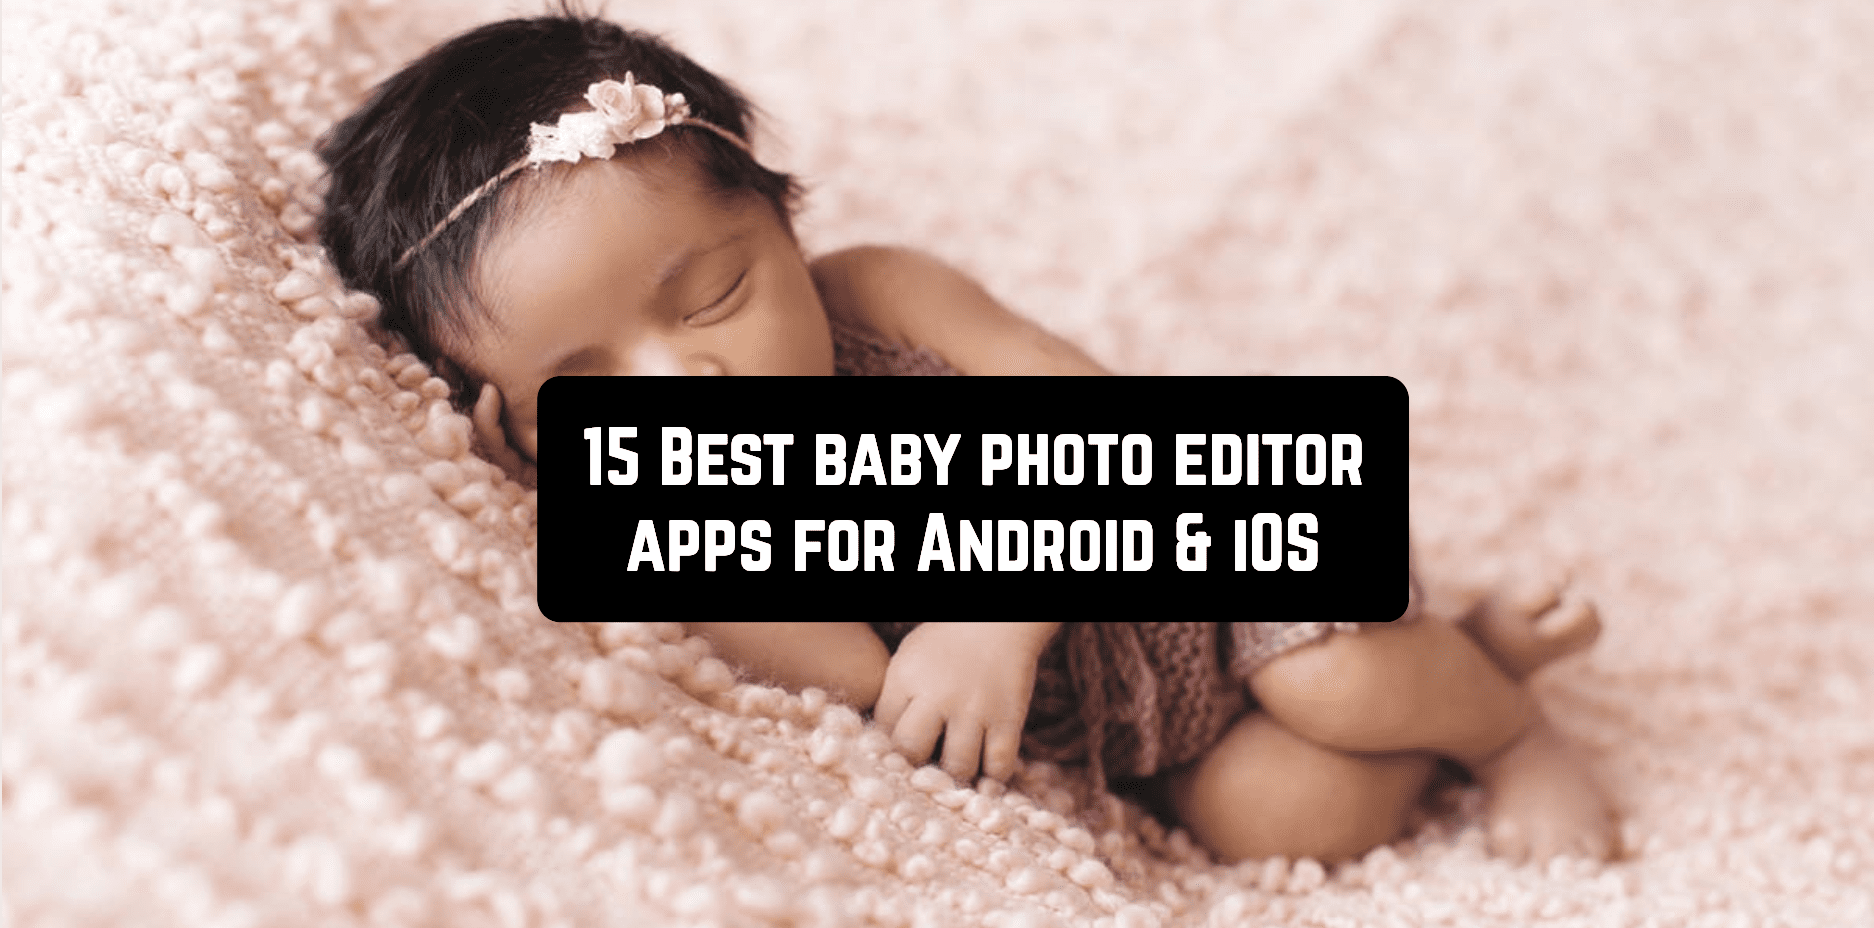 Best baby photo editor apps